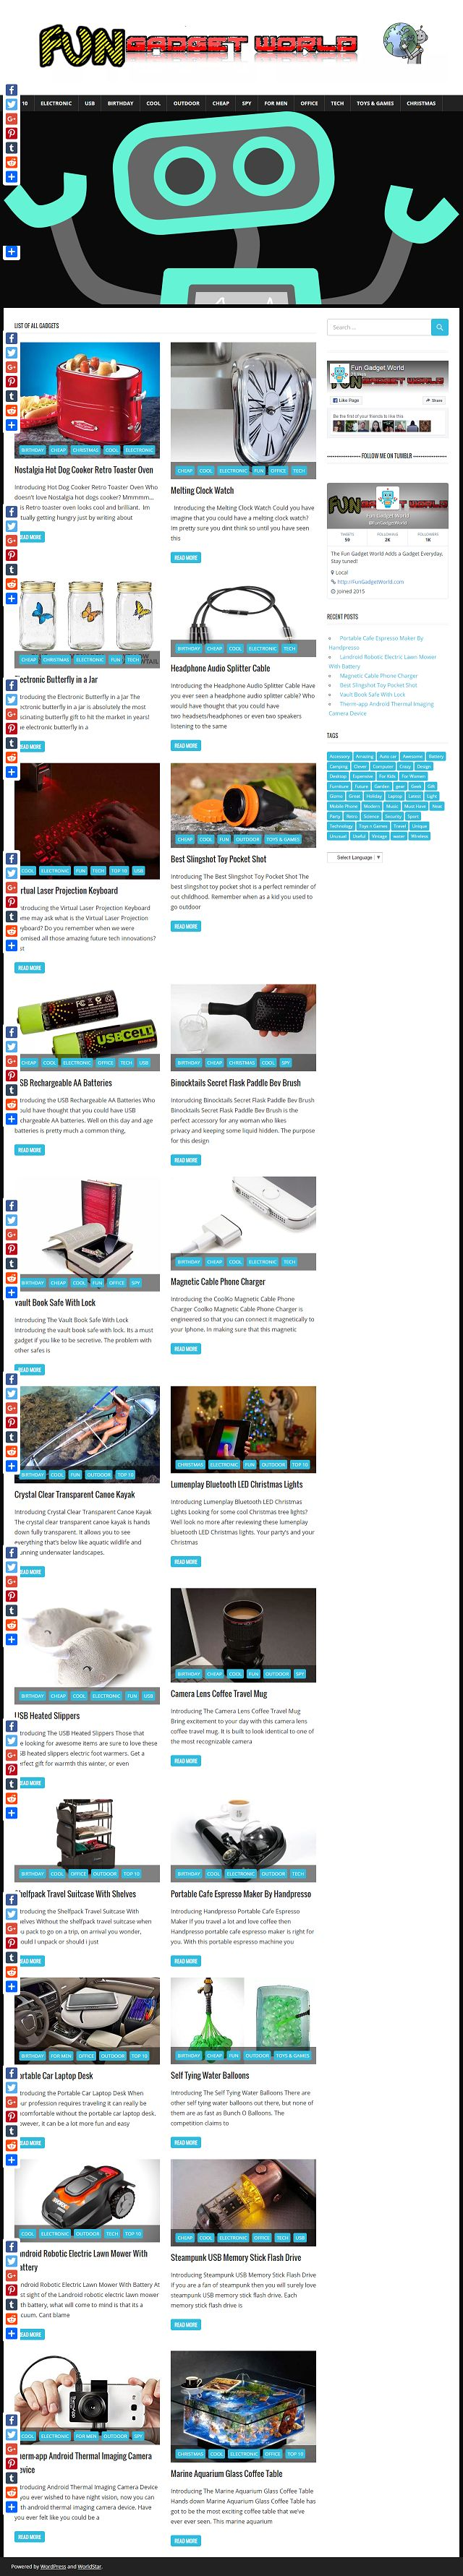 Fun Gadget World online website is purposely dedicated to bringing you nothing more but the best cheapest gadgets from all over the internet. This is almost the very best site on the internet to find low cost, amazing and cool gadgets that are actually really useful.